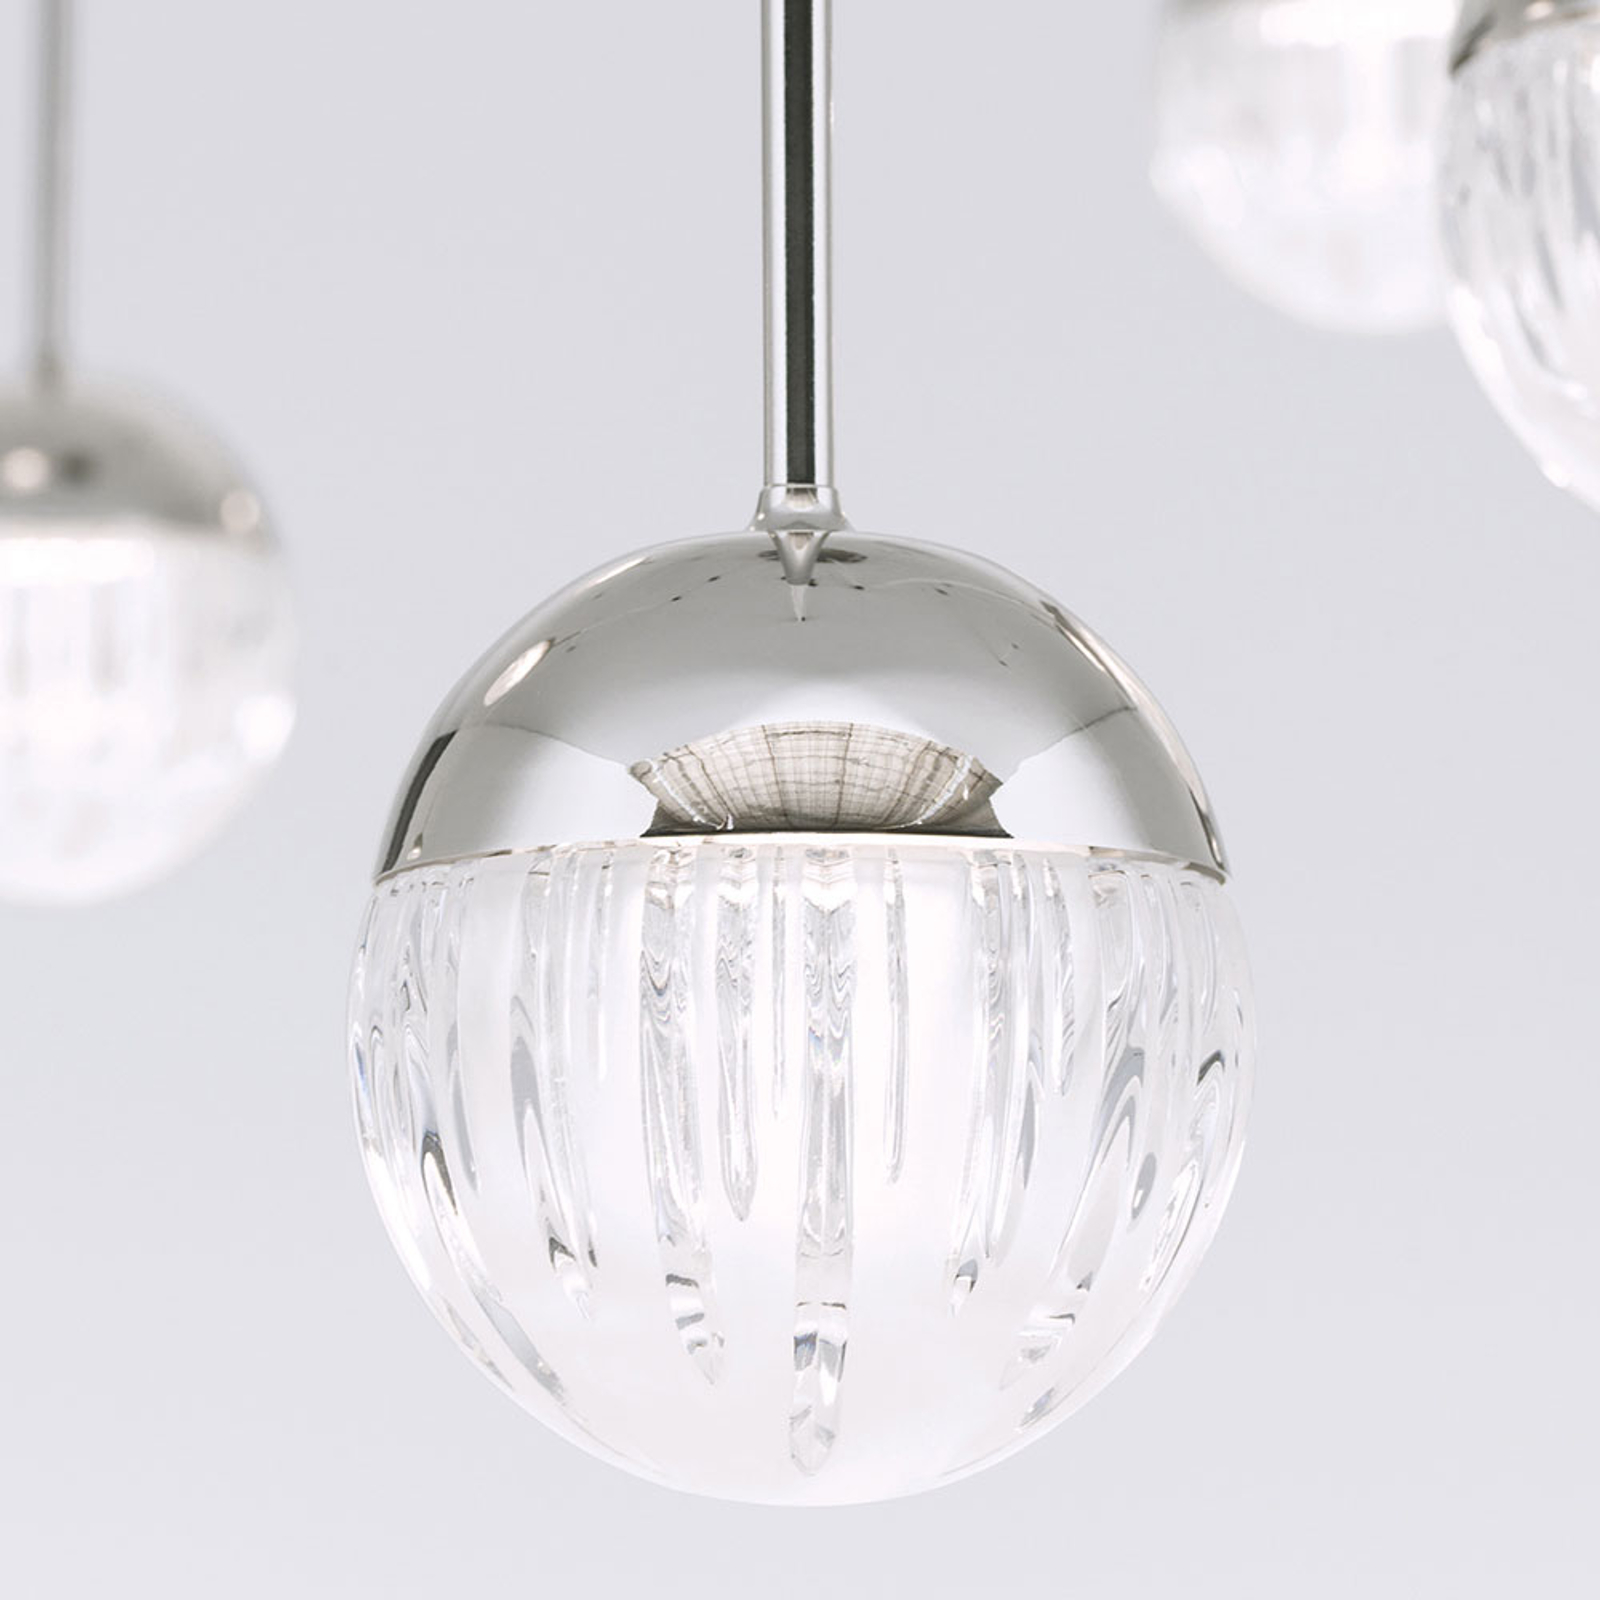 LED hanglamp Ball 10-lamps nikkel decentraal